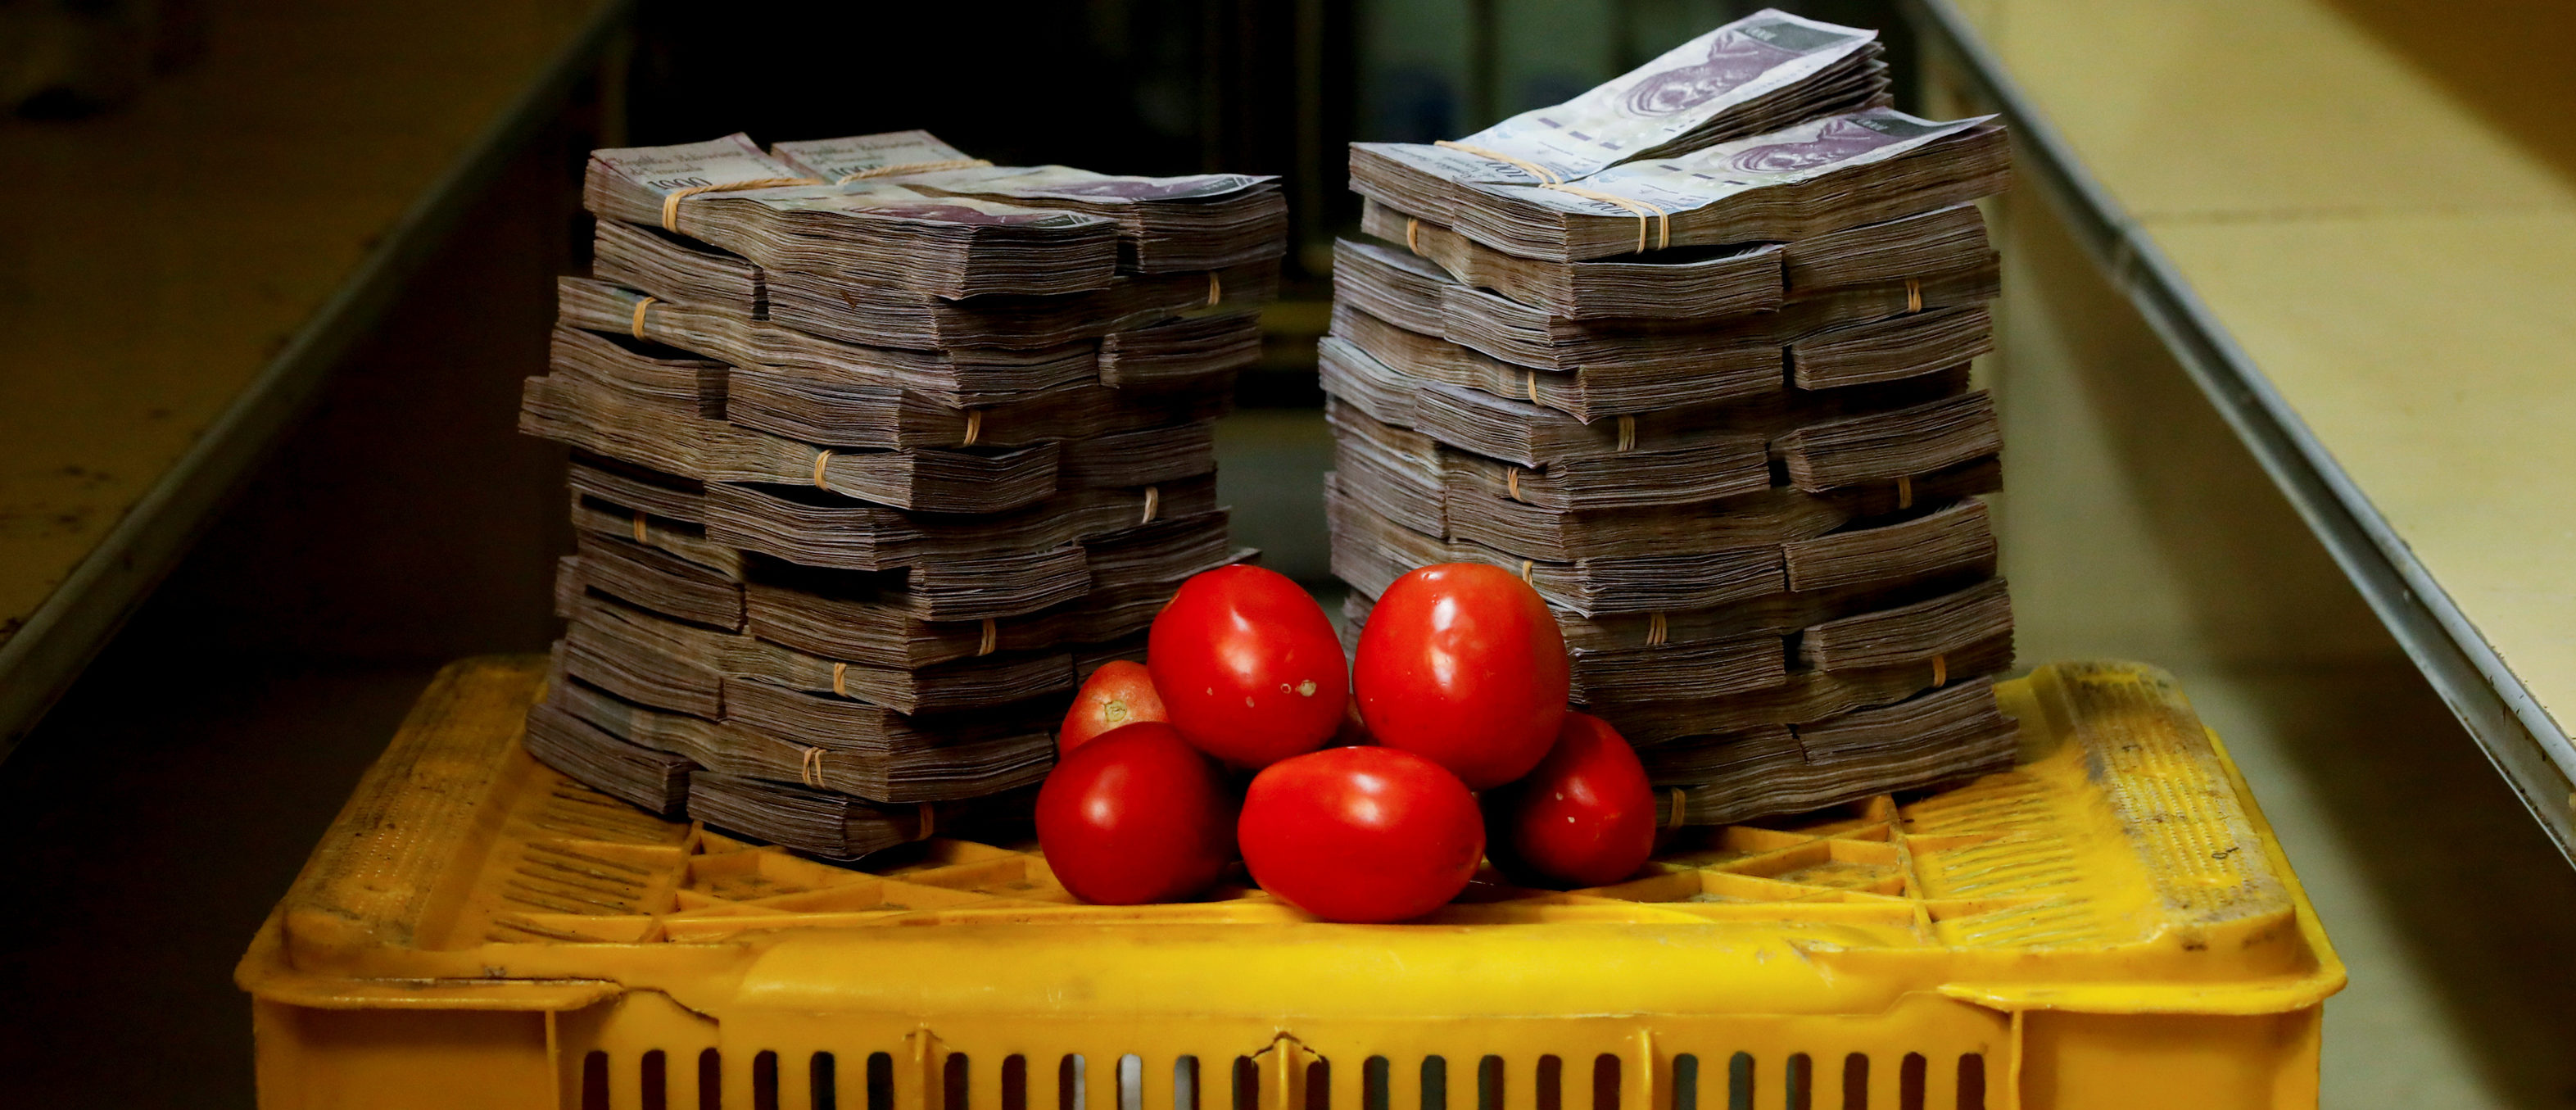 """A kilogram of tomatoes is pictured next to 5,000,000 bolivars, its price and the equivalent of 0.76 USD, at a mini-market in Caracas, Venezuela August 16, 2018. It was the going price at an informal market in the low-income neighborhood of Catia. REUTERS/Carlos Garcia Rawlins SEARCH """"GARCIA ECONOMY"""" FOR THIS STORY. SEARCH """"WIDER IMAGE"""" FOR ALL STORIES. - RC11990DC310"""